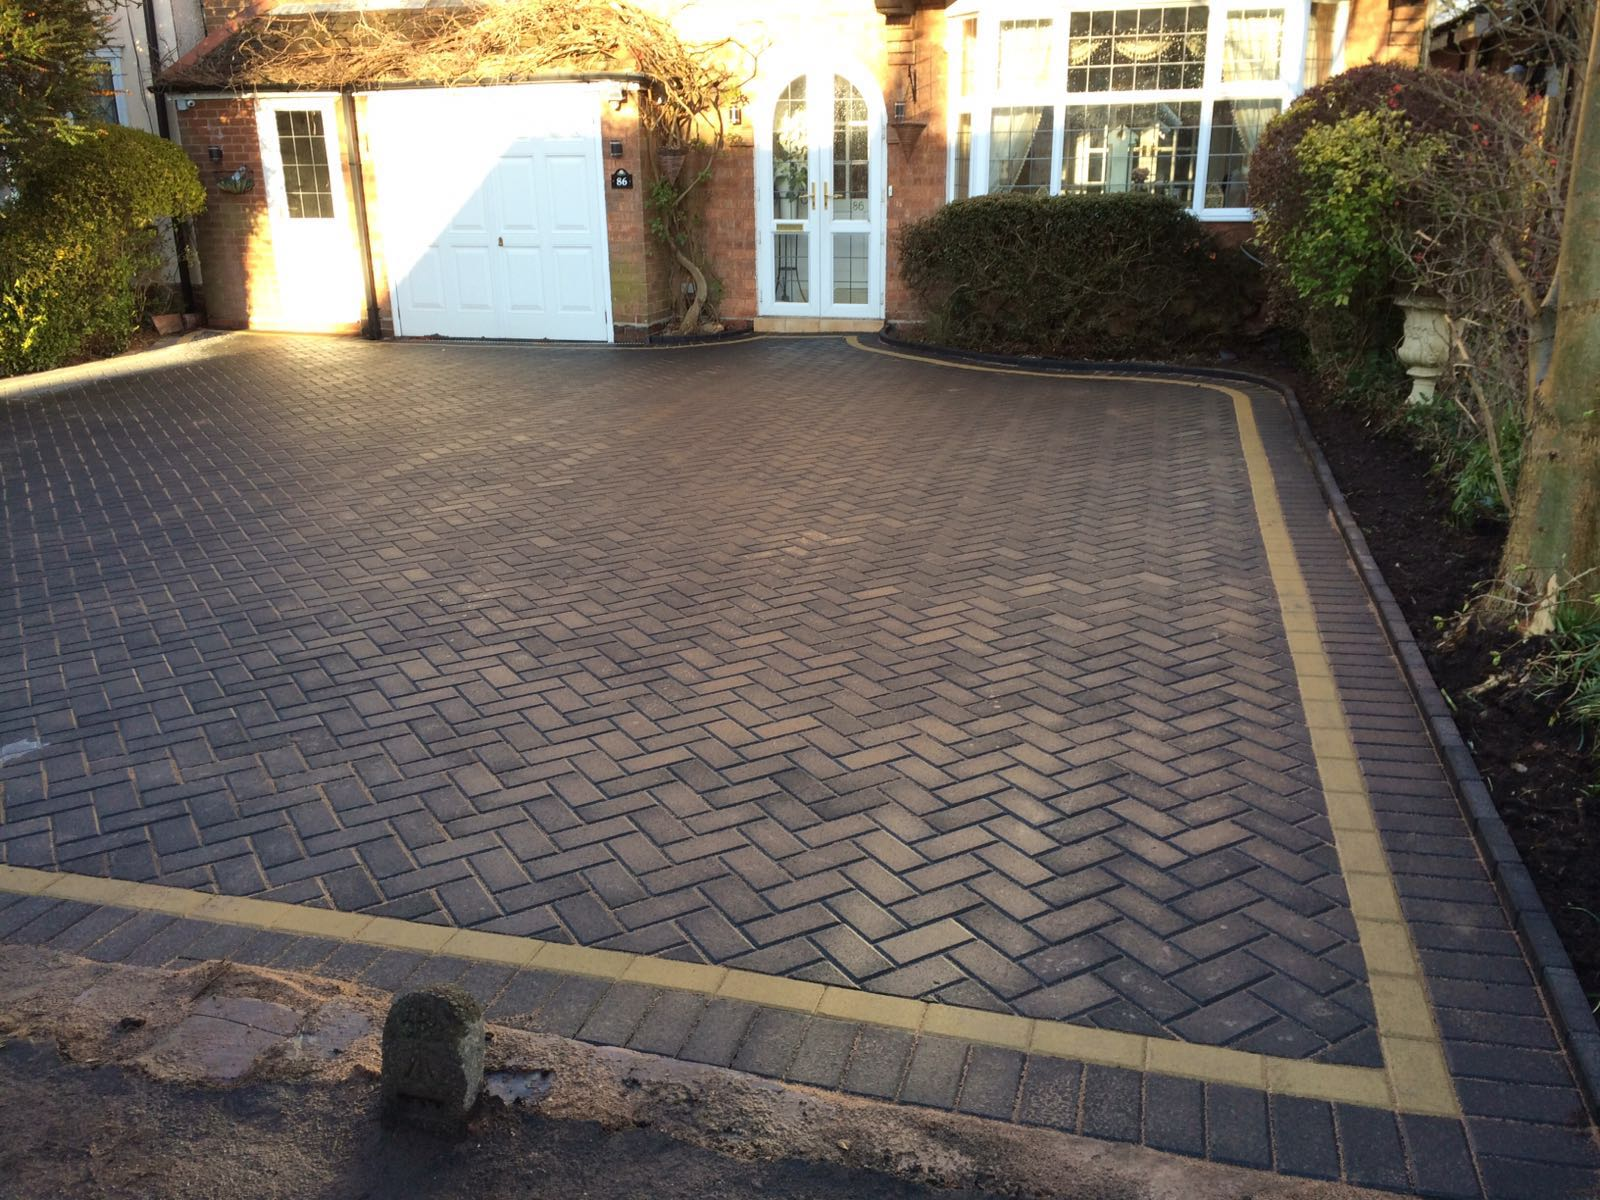 paving contractors for milton keynes